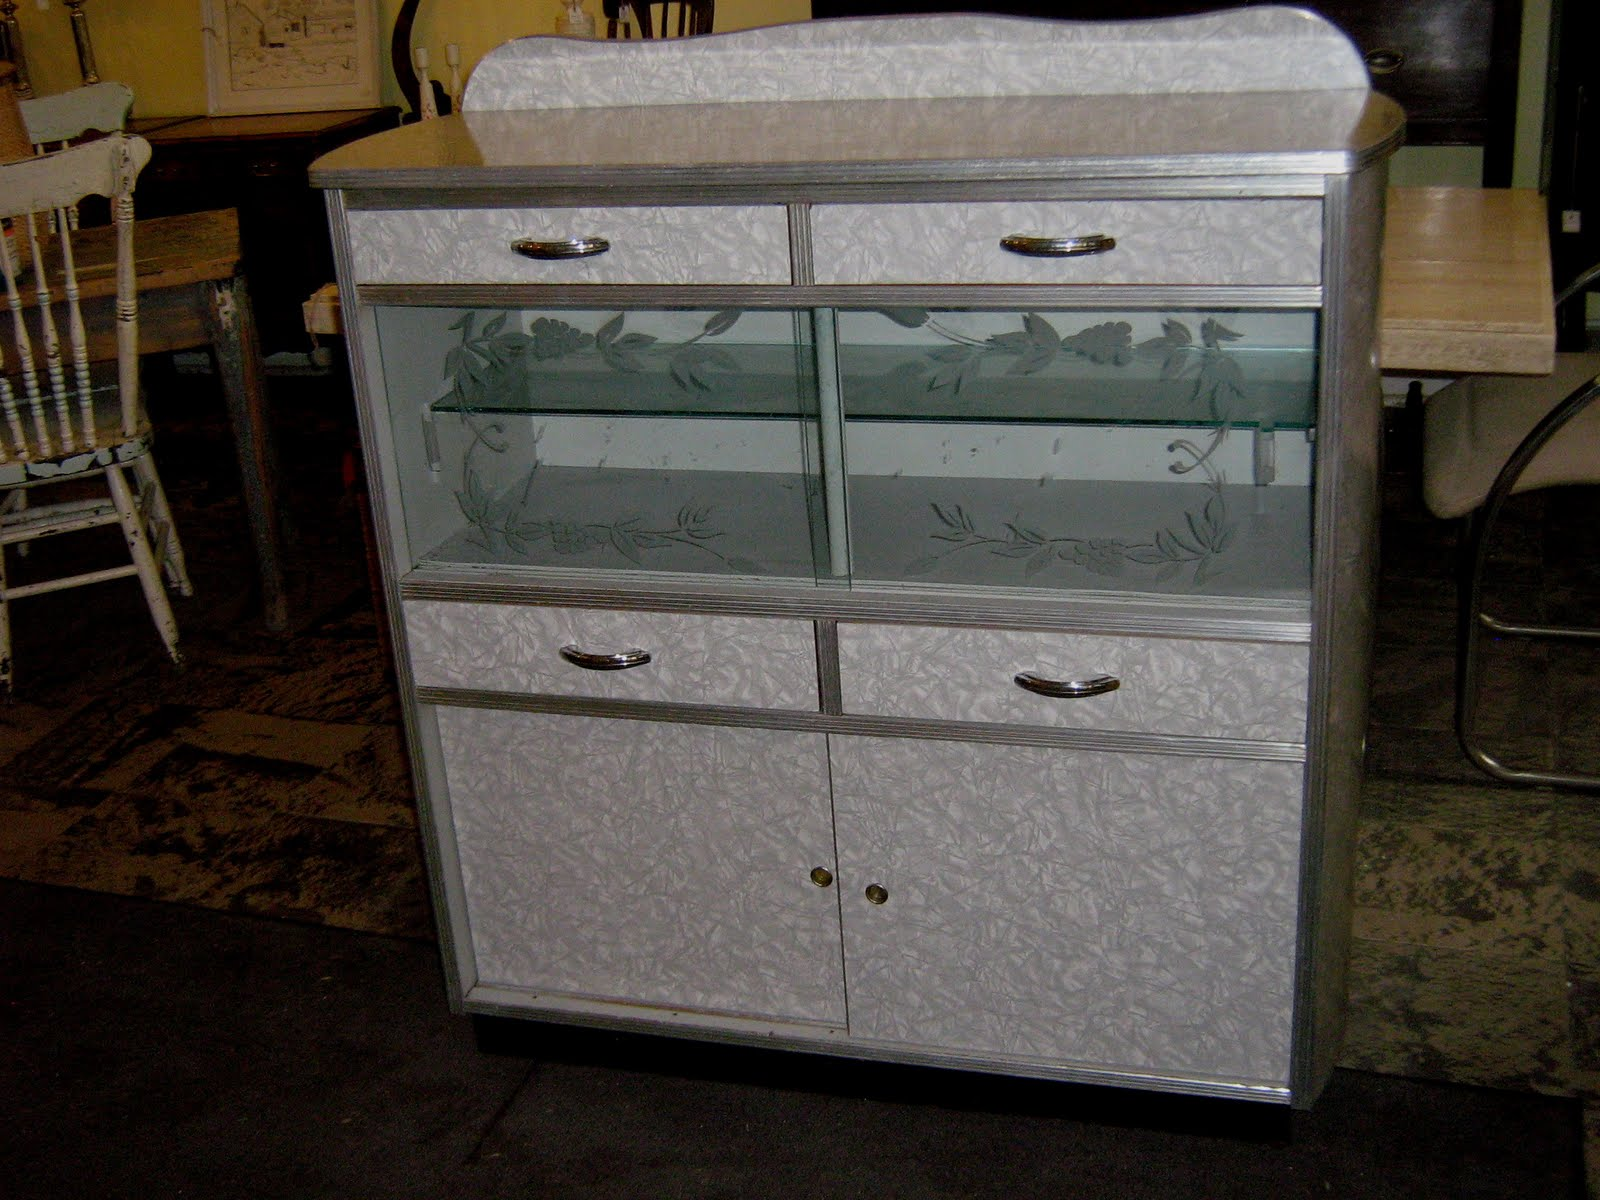 Vintage Kitchen Cabinets For Sale Colorful Accessories Funk And Gruven A Z 1950 39s Cabinet